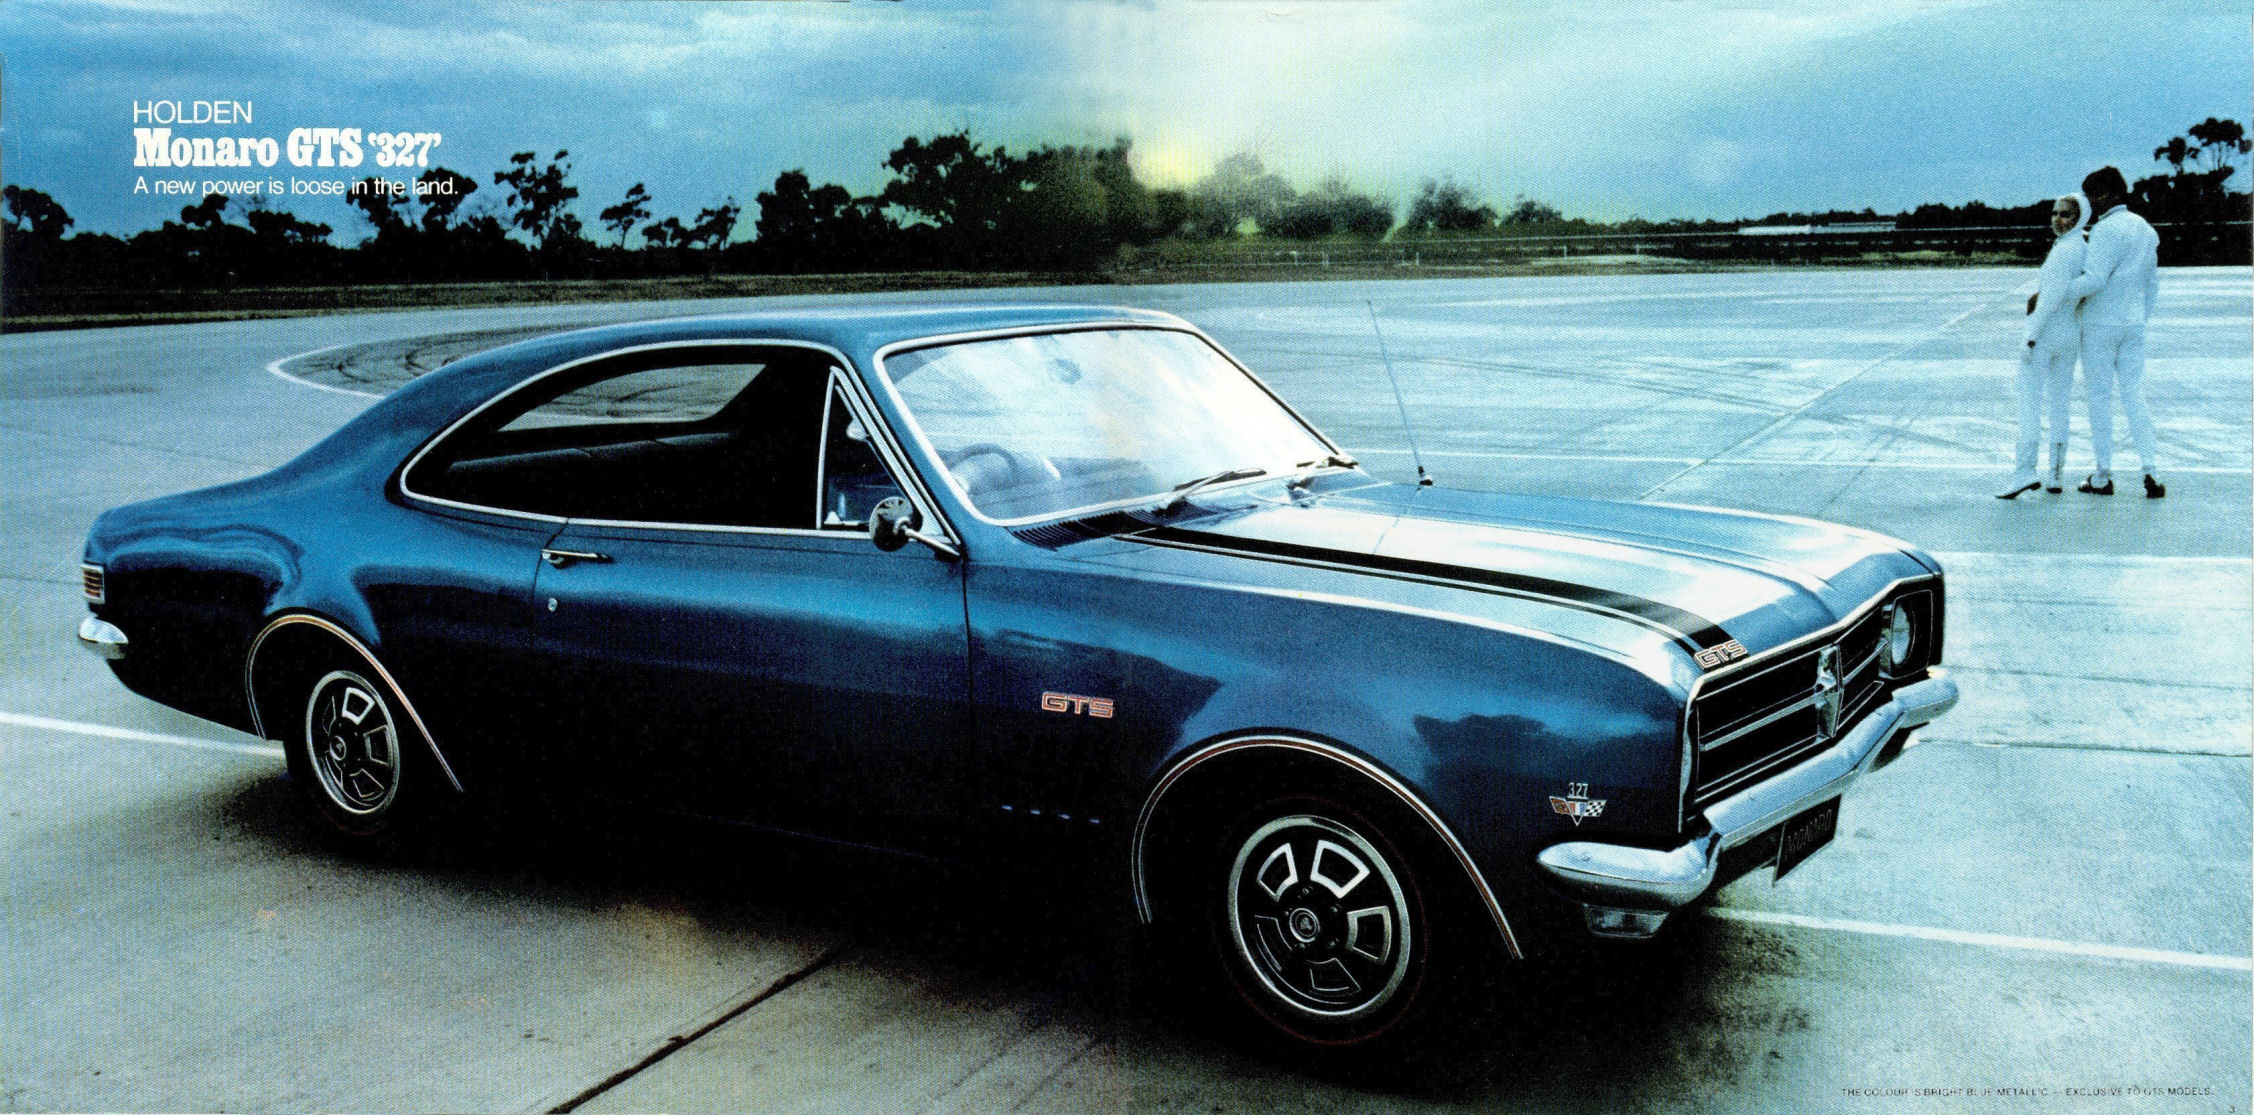 Holden monaro photo - 2